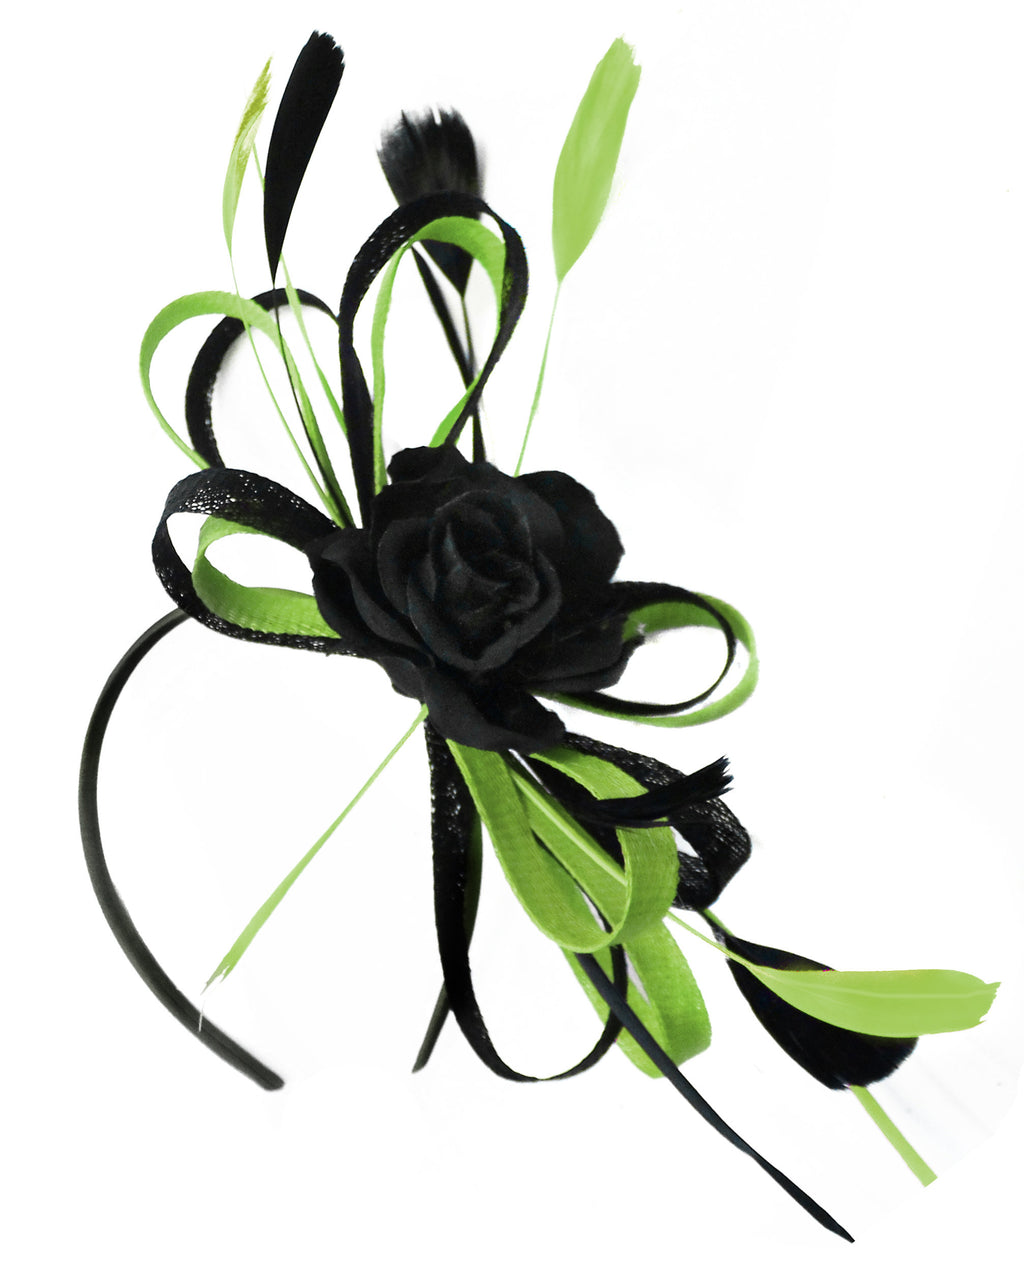 Caprilite Sinamay Rose Black and Lime Fascinator on Headband Alice Band UK Wedding Ascot Races Loop